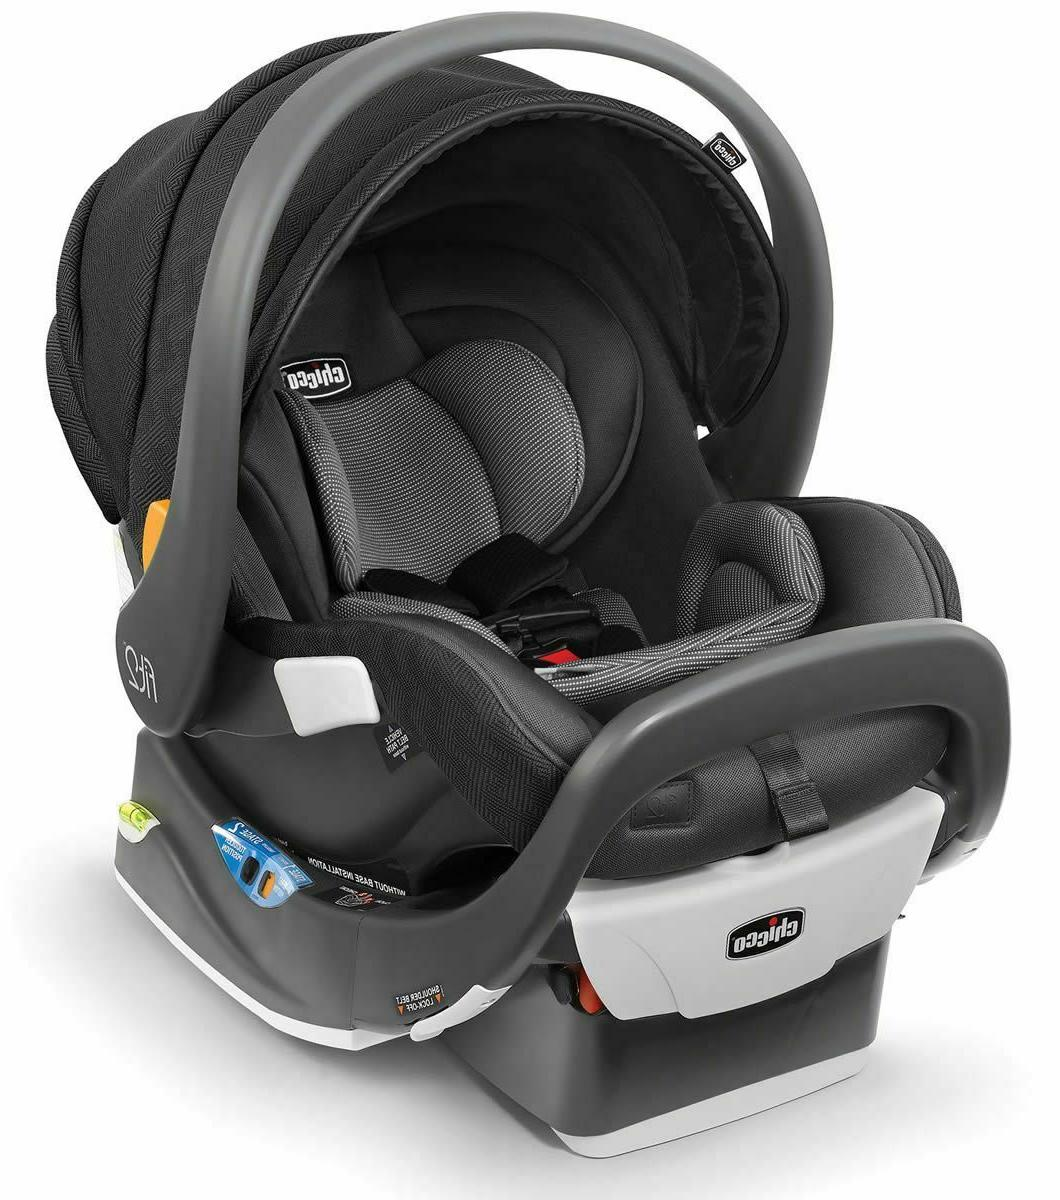 fit2 rear facing infant and toddler car